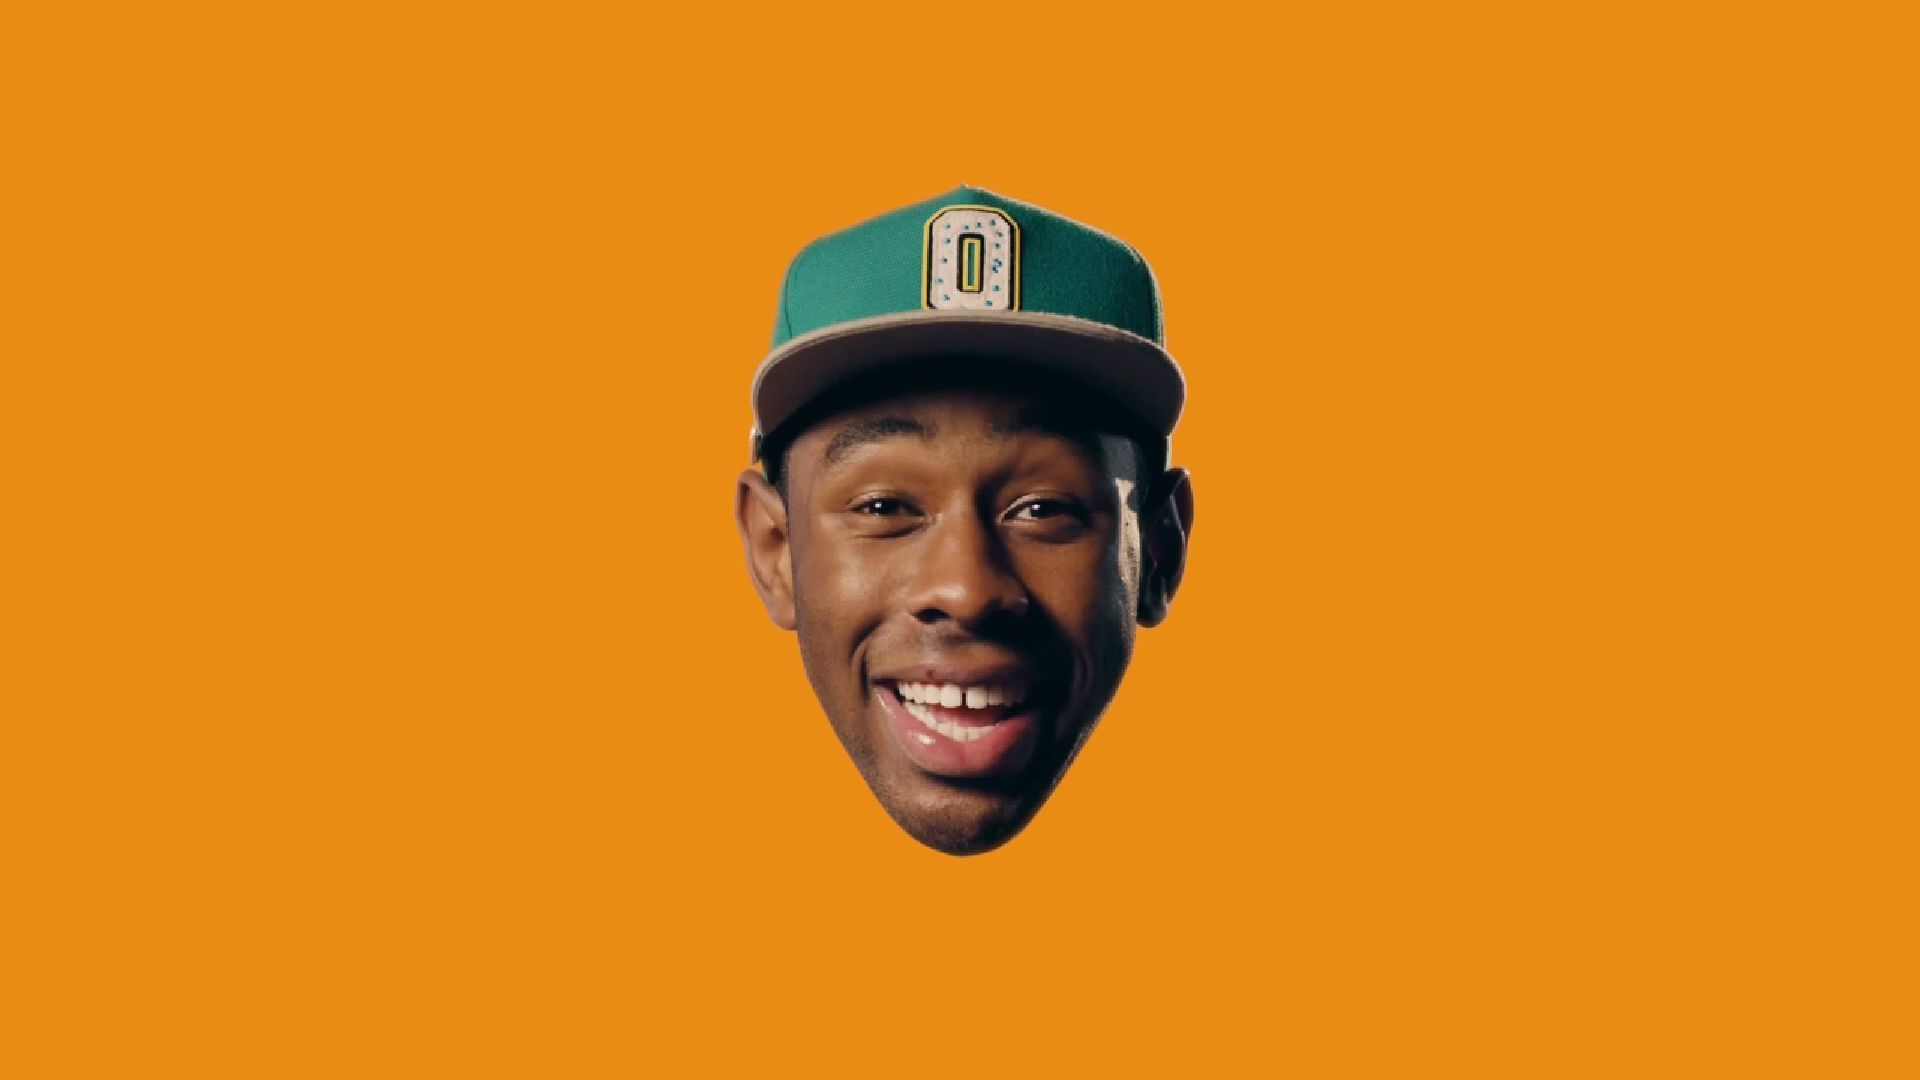 tyler the creator face wallpaper 70401